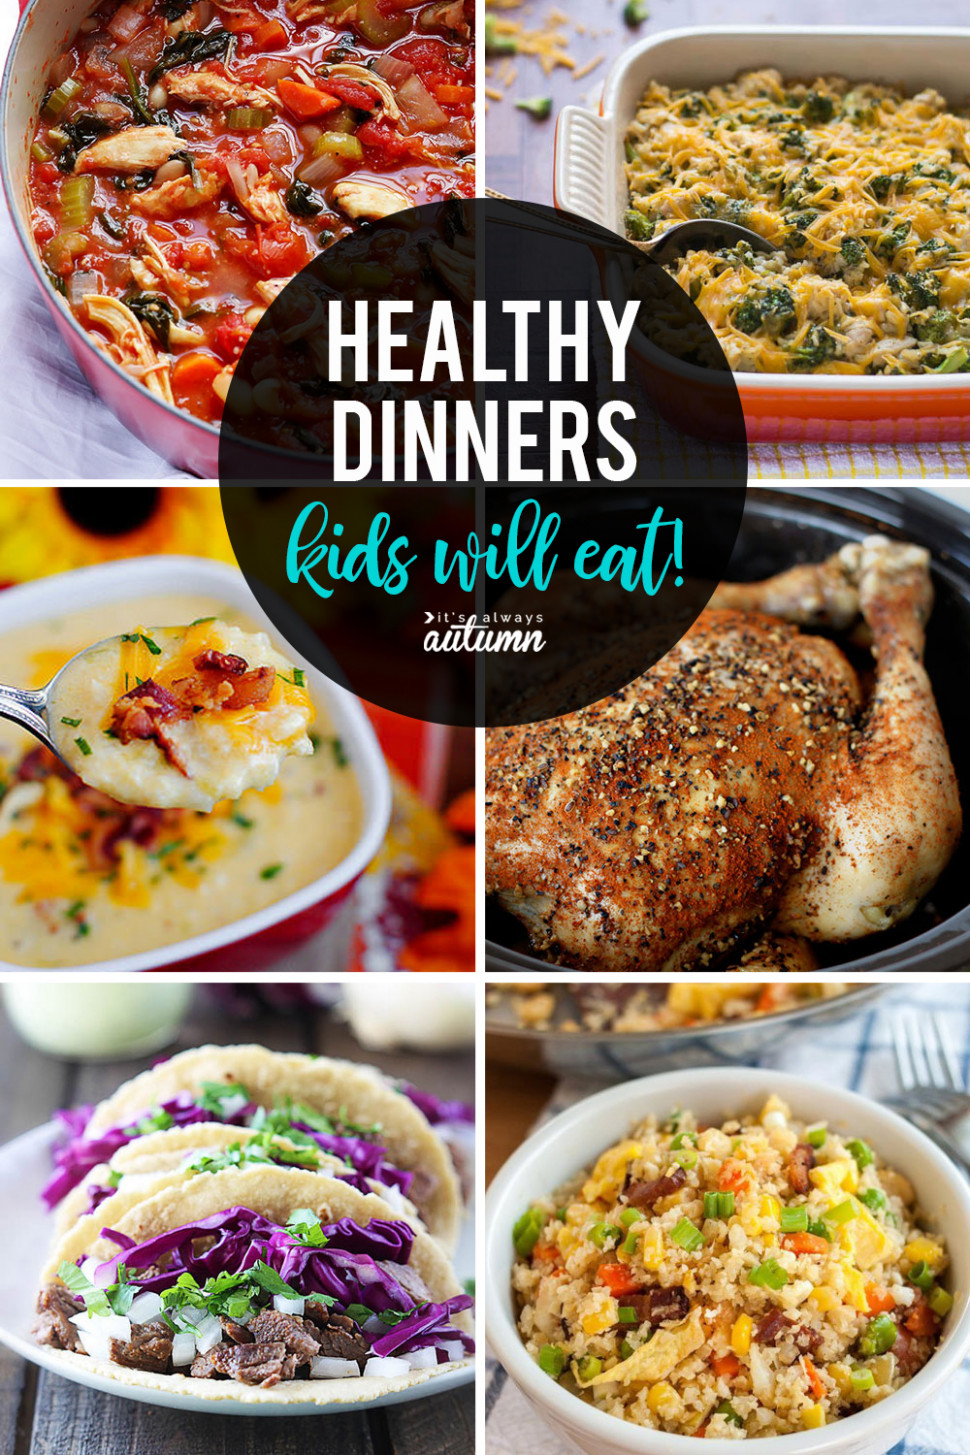 12 healthy easy recipes your kids will actually want to eat ..